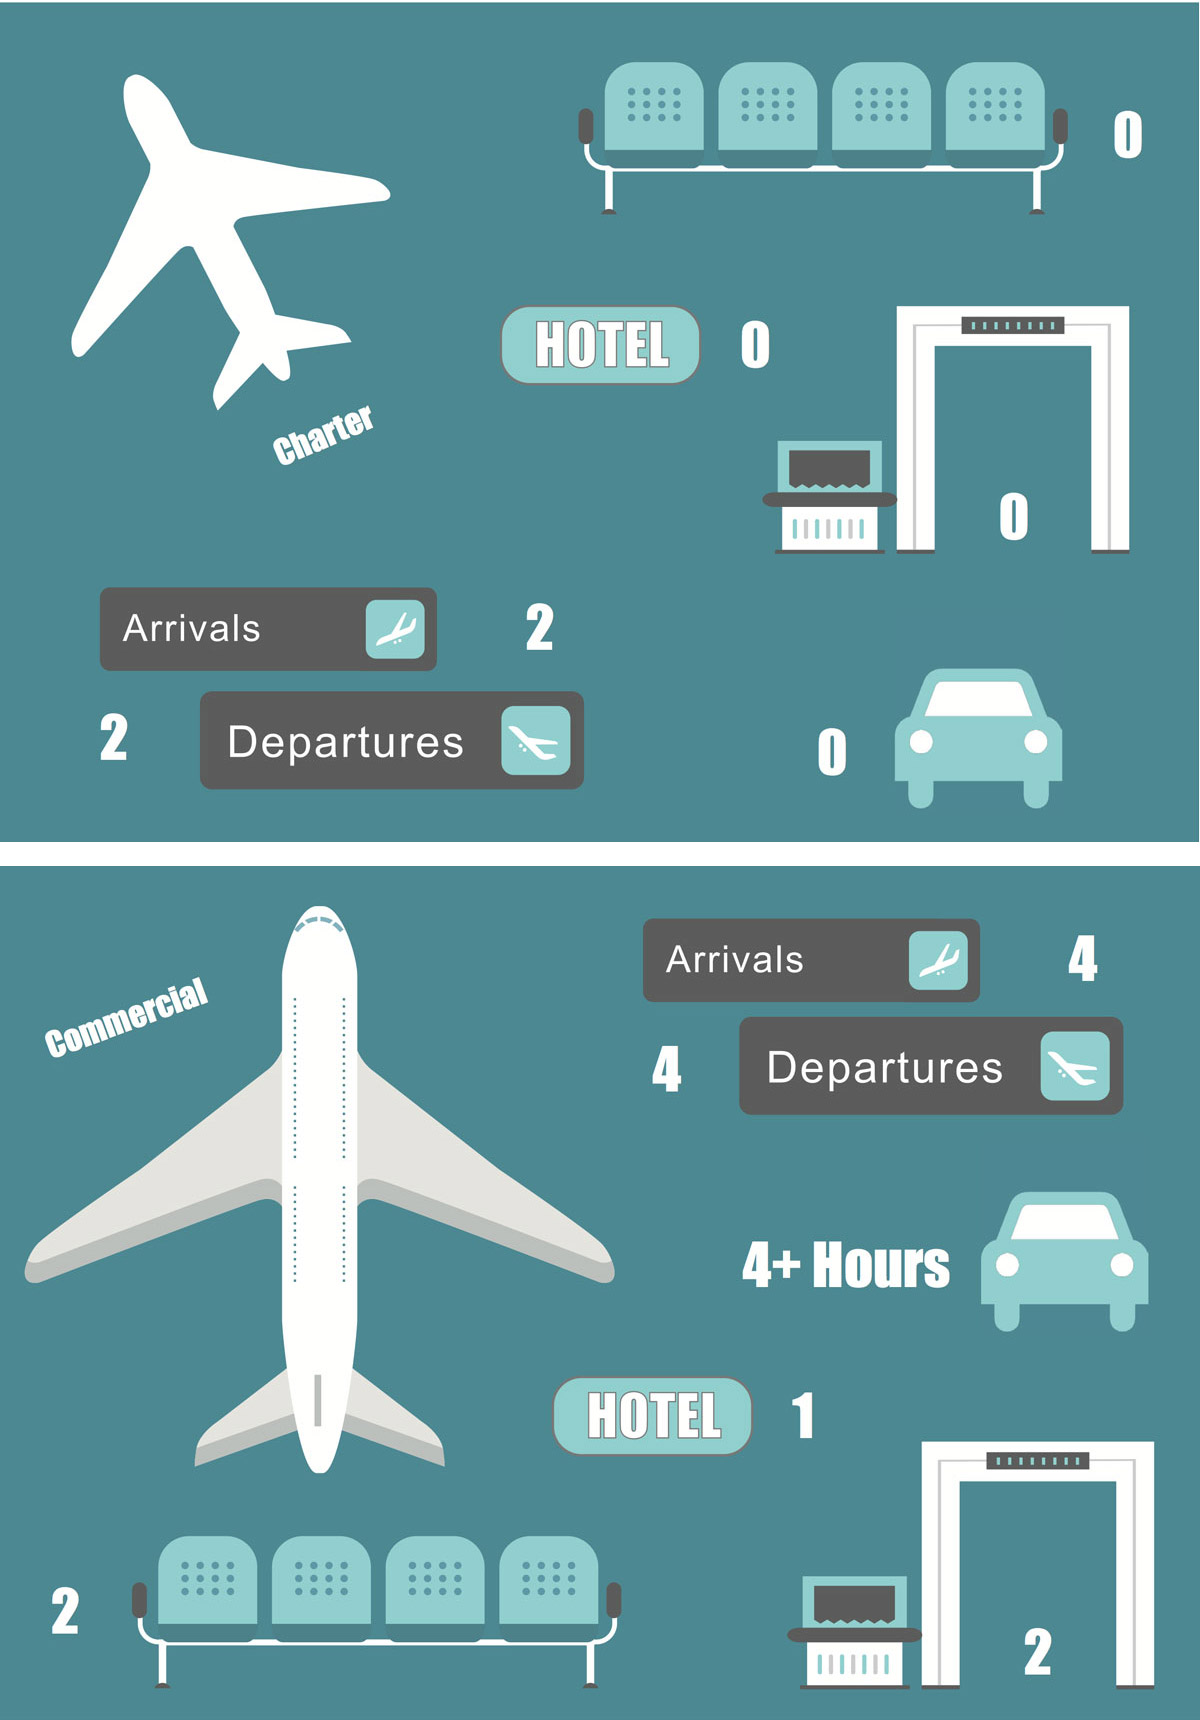 commercial vs charter flight info graphic